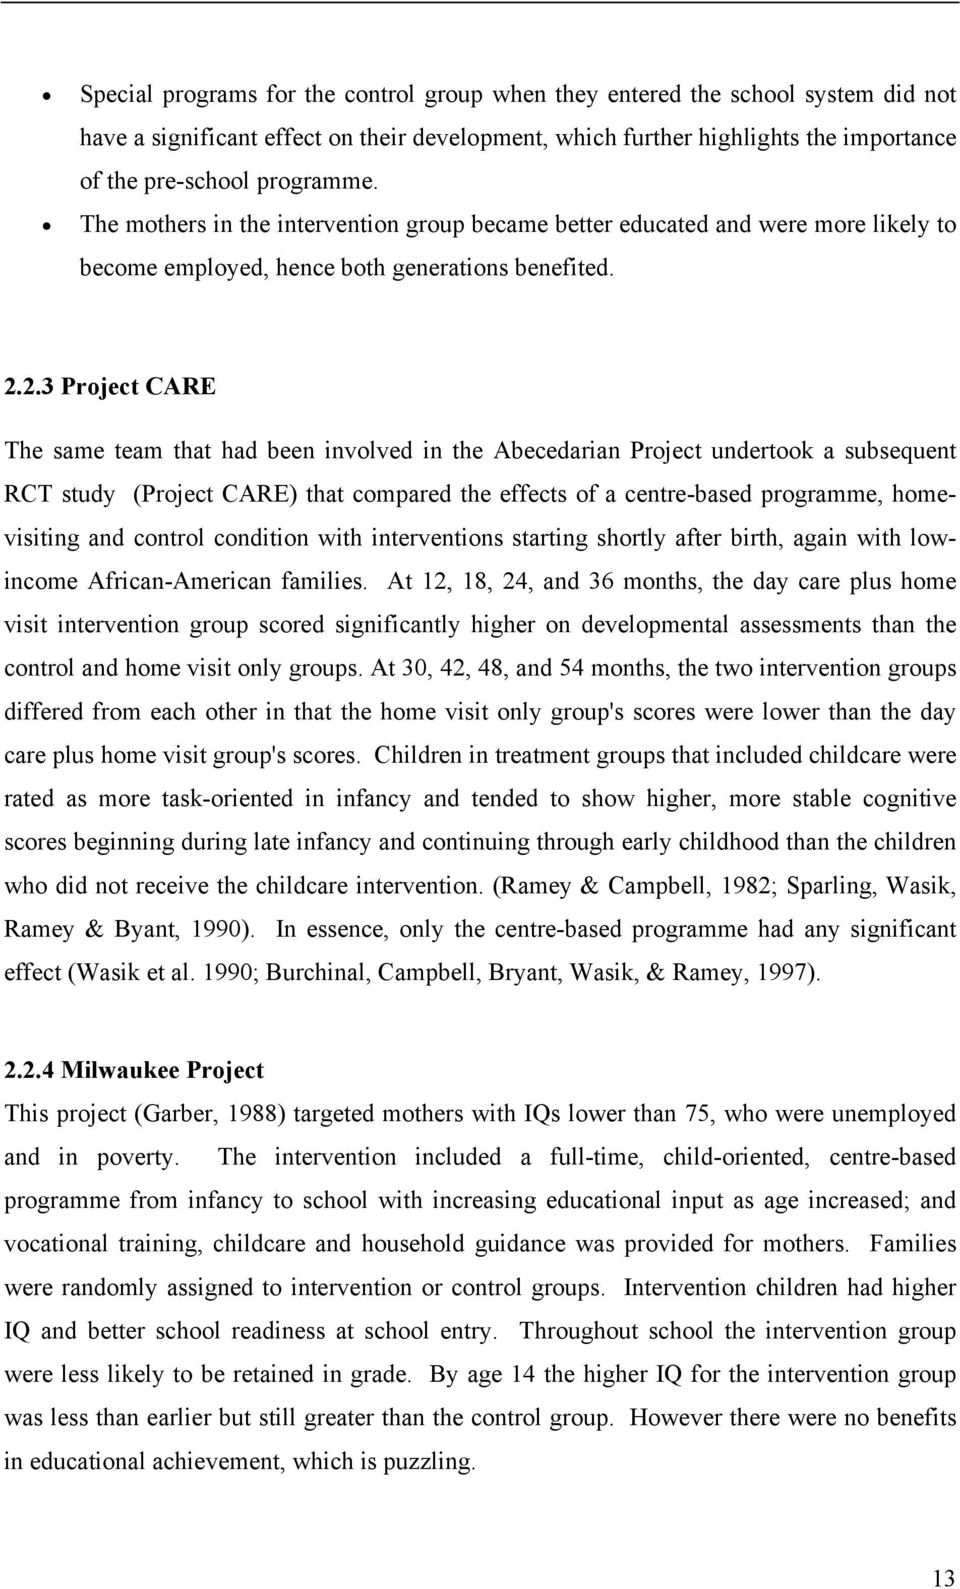 2.3 Project CARE The same team that had been involved in the Abecedarian Project undertook a subsequent RCT study (Project CARE) that compared the effects of a centre-based programme, homevisiting